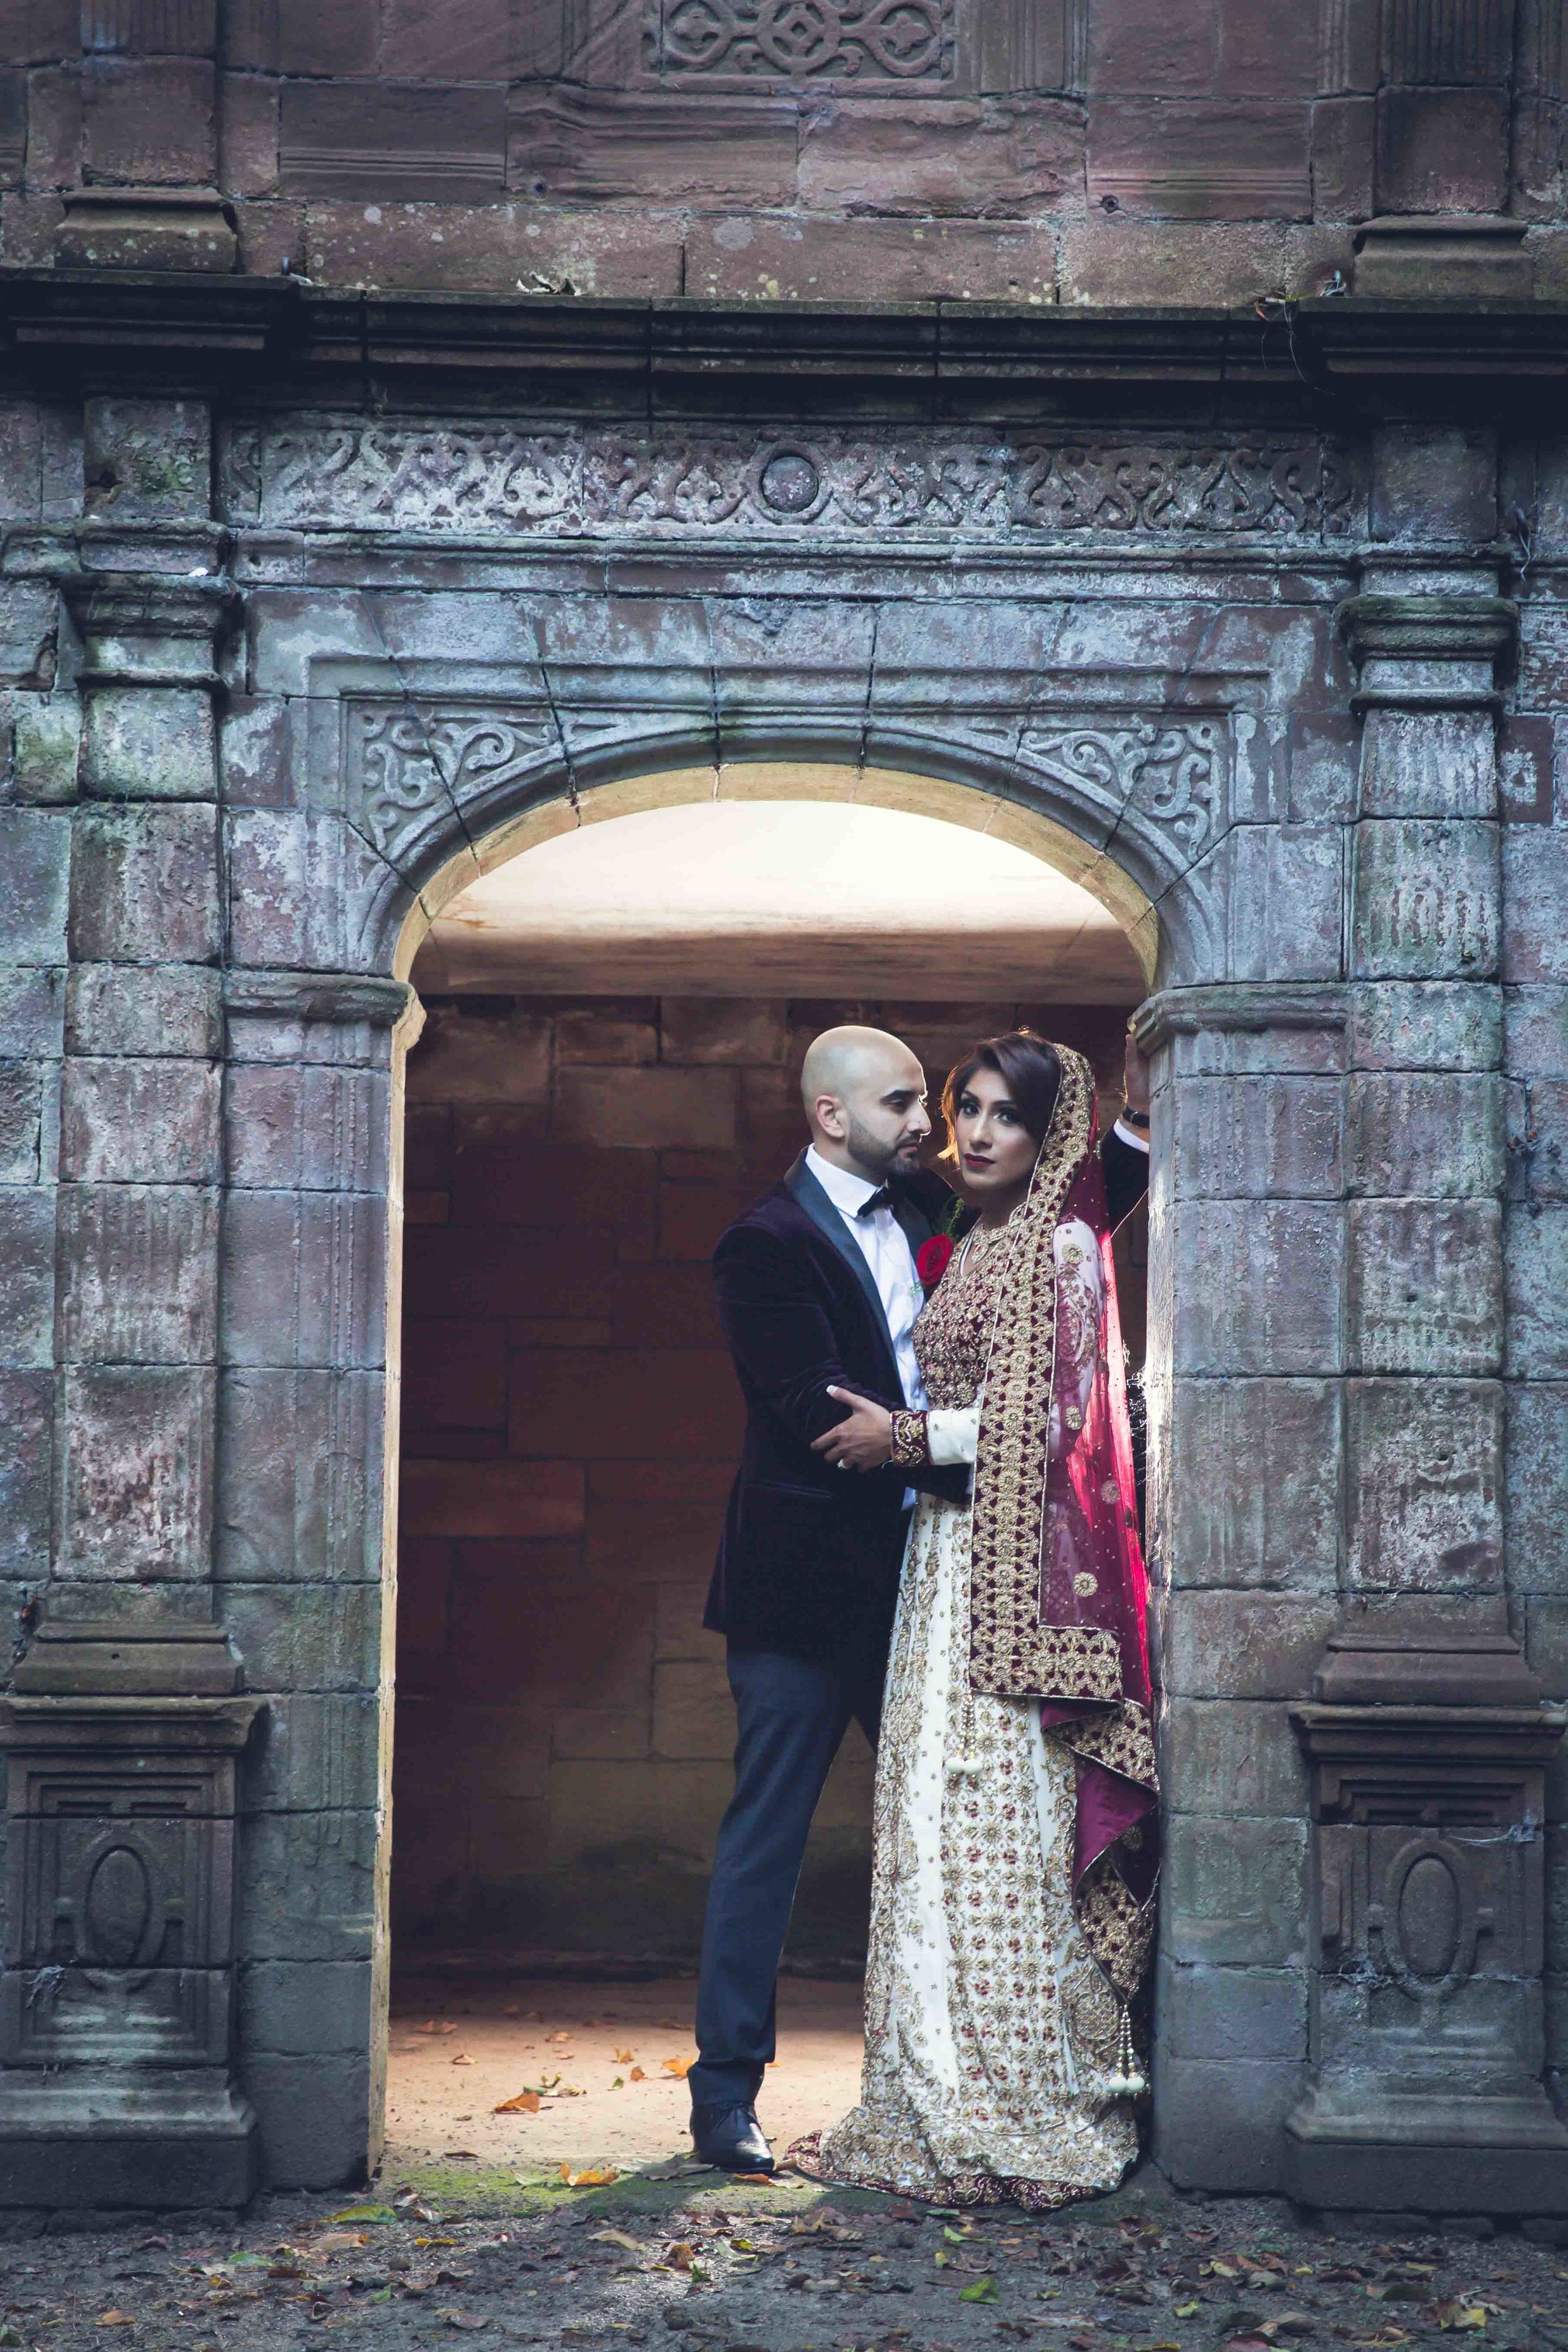 Asian Wedding Photographer Opu Sultan Photography Lyme Park Scotland Edinburgh Glasgow London Manchester Liverpool Birmingham Wedding Photos prewed shoot Azman & Saira Blog-100.jpg